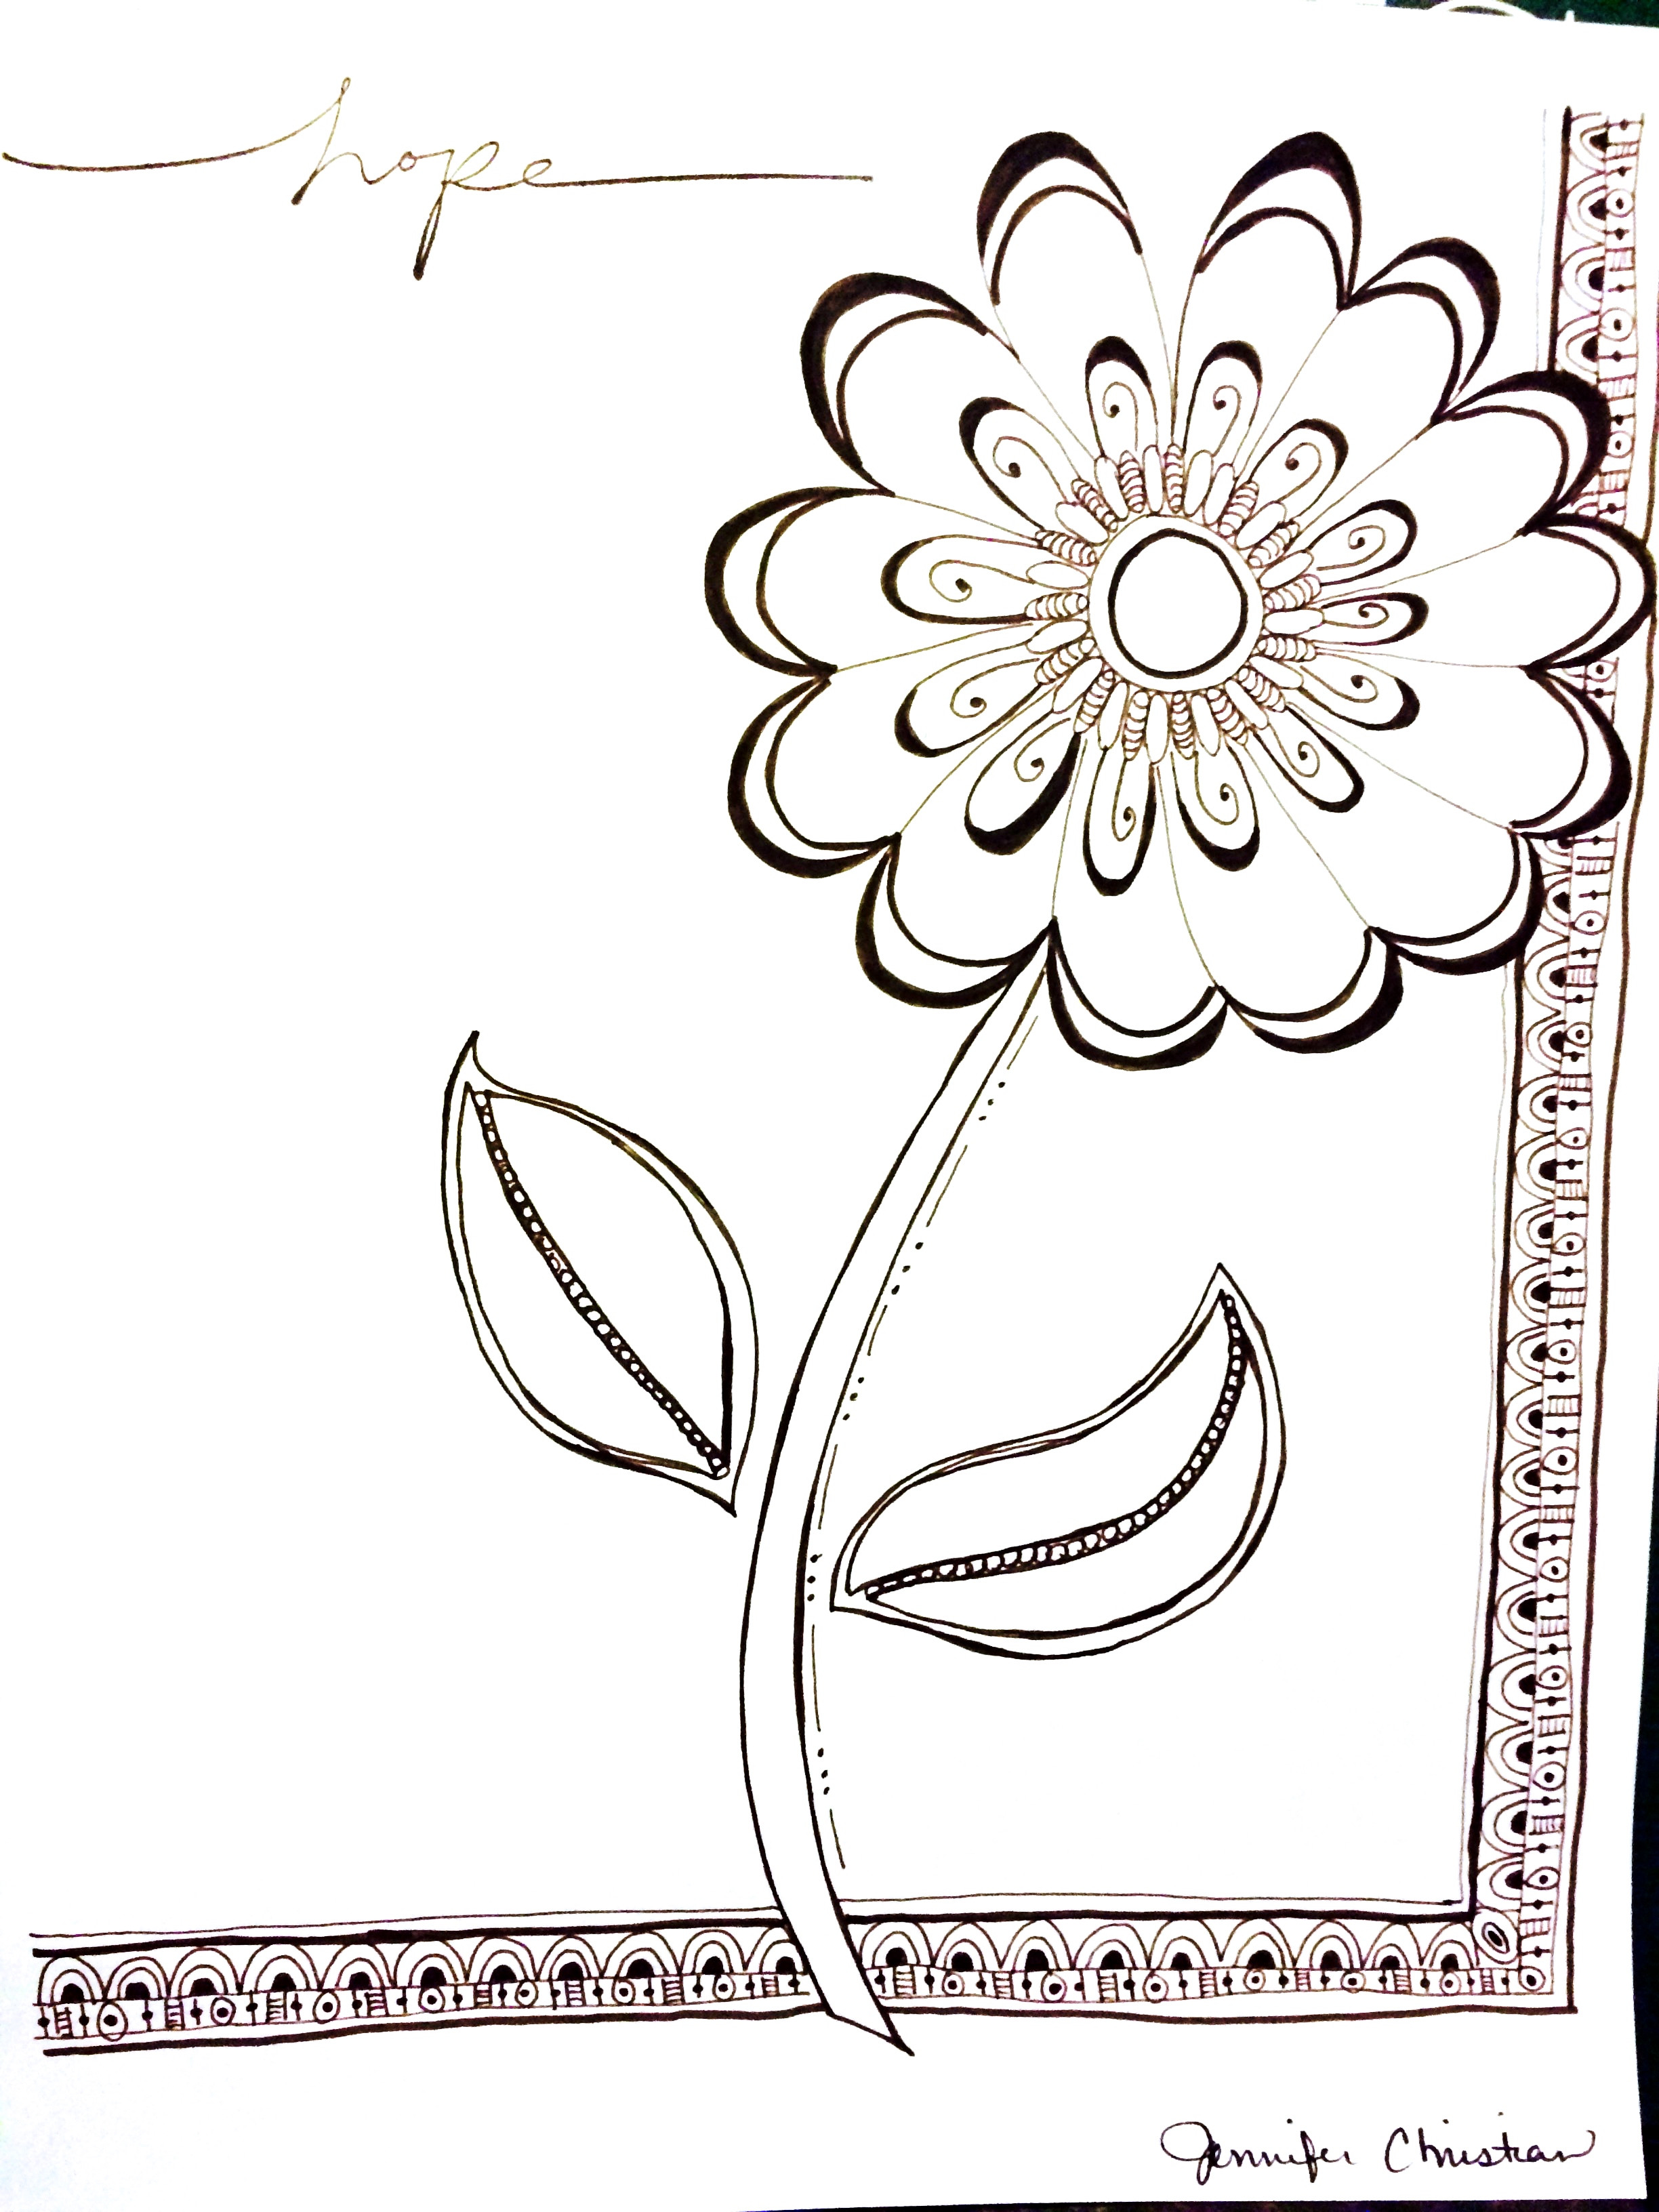 Best ideas about Free Coloring Sheets On Gratutude . Save or Pin Coloring Pages – Gratitude Now.